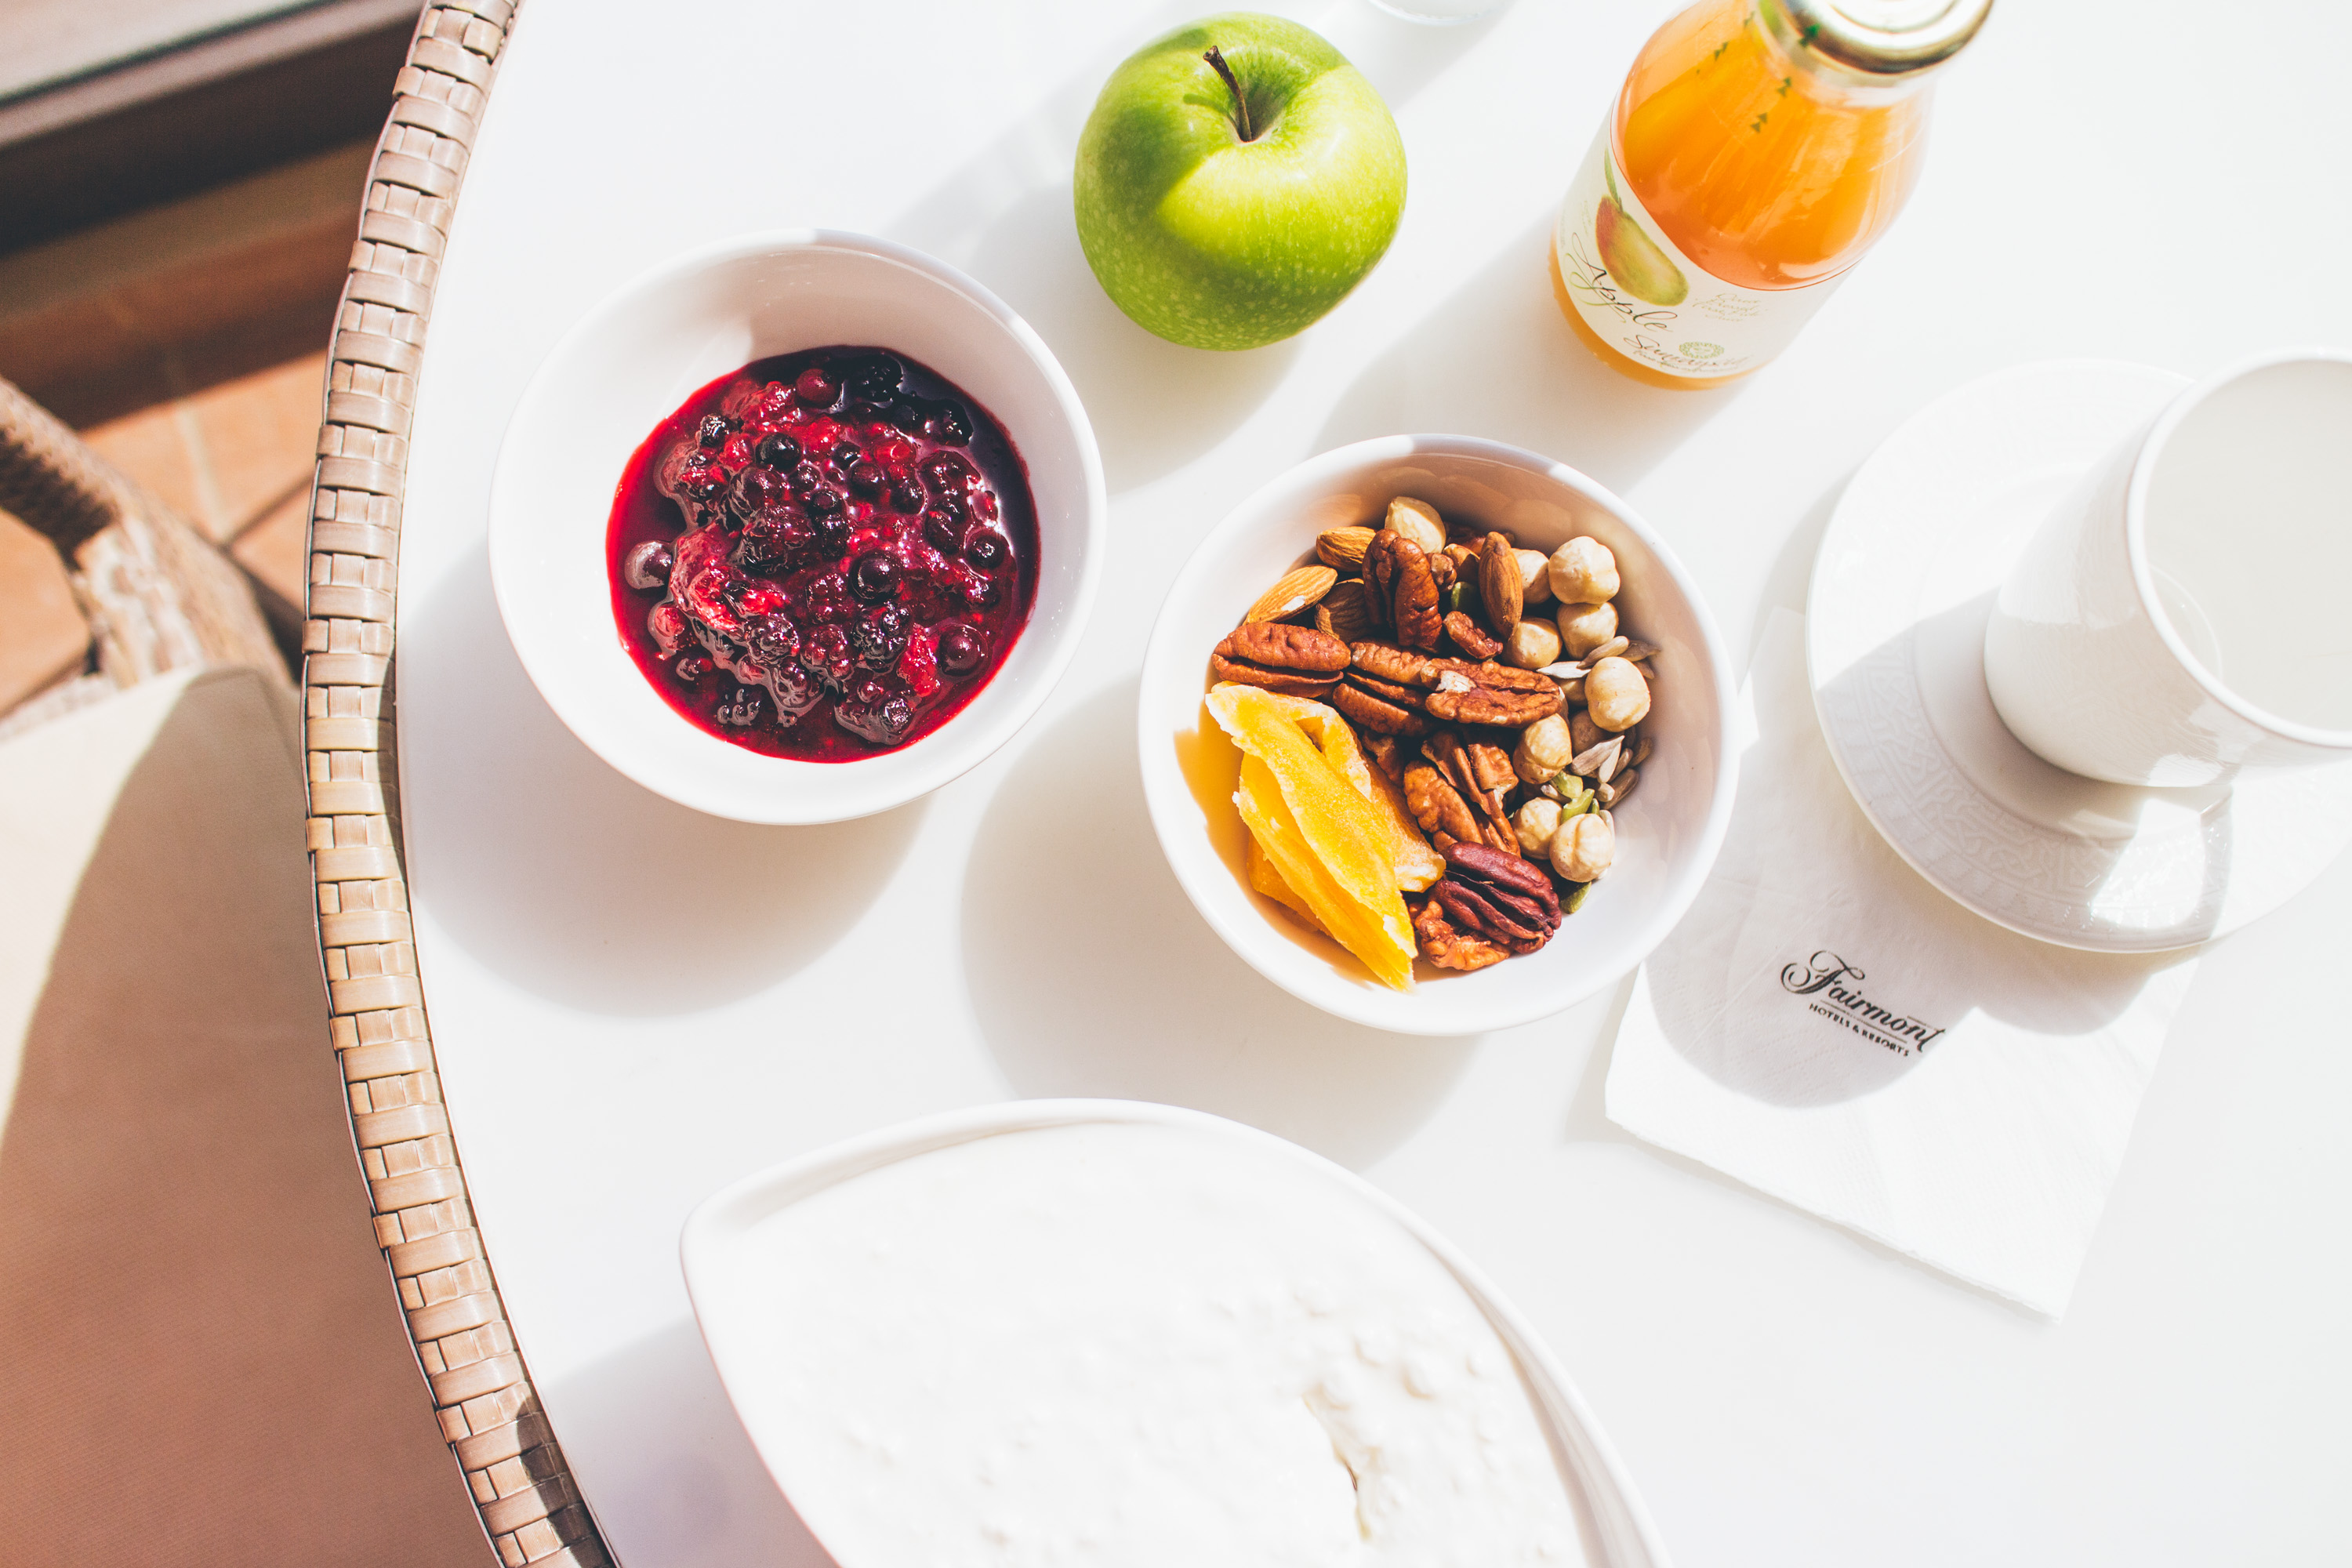 Andrea_Berlin_Breakfast_Balcony_Fairmont_the_palm_Dubai-2302